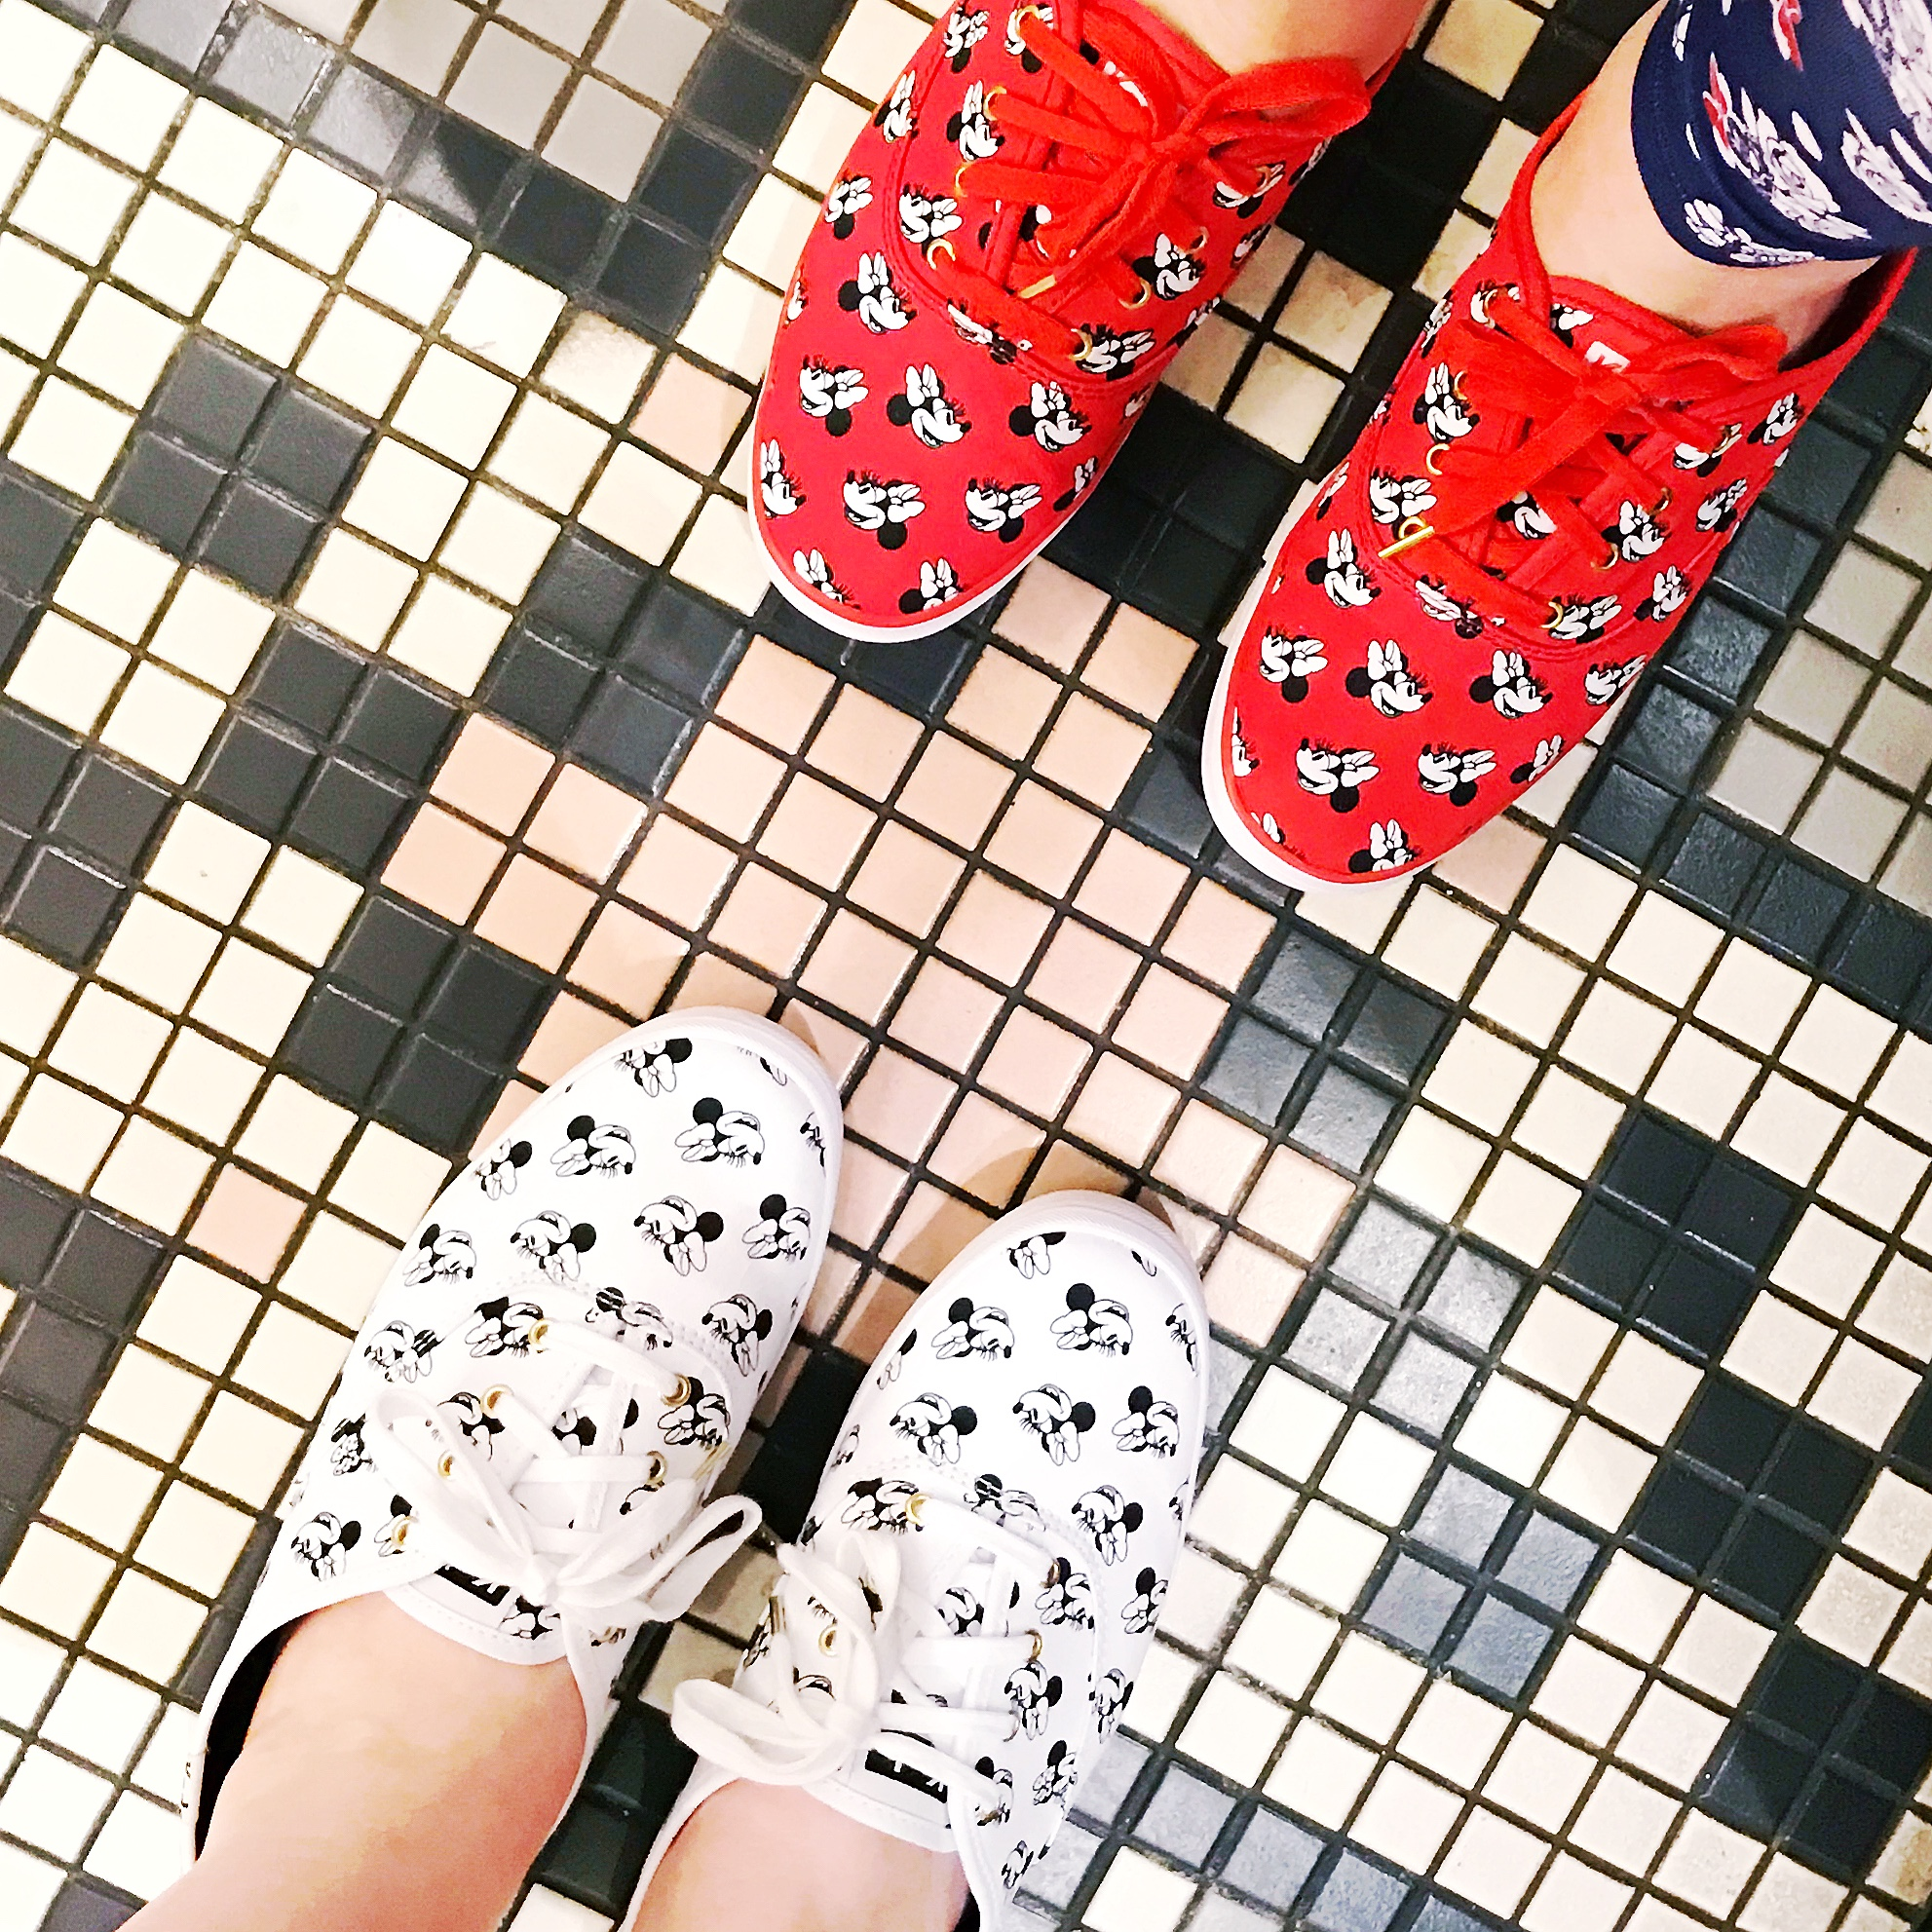 Meghan and I broke in our  Minnie Keds  at Hollywood Studios. You can read more about the Minnie Mouse Keds collab in an earlier post  here .